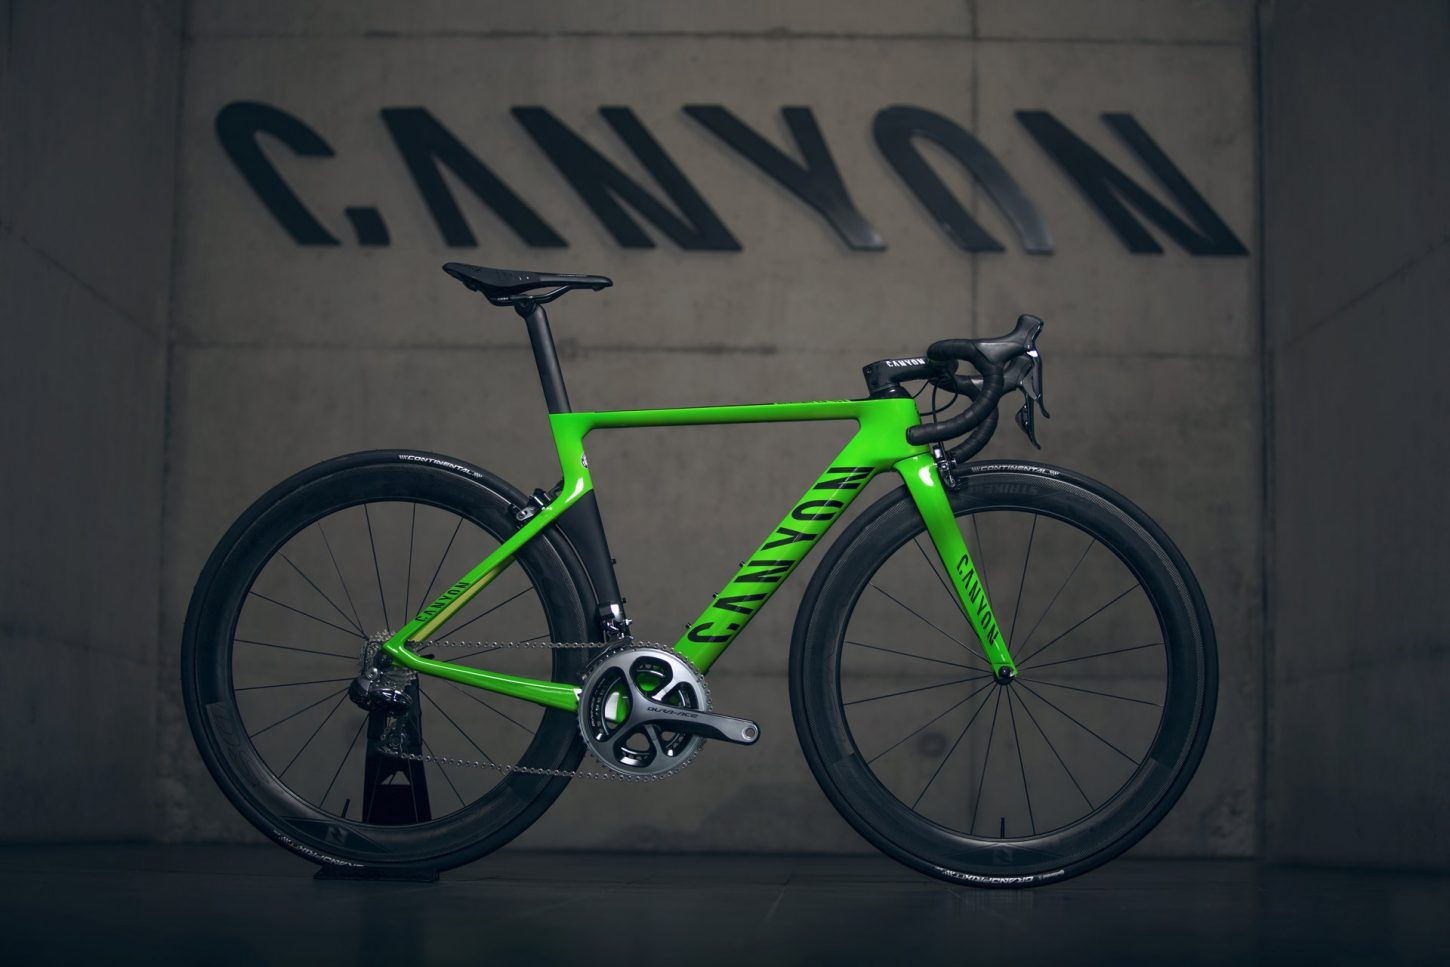 canyon bikes usa location best seller bicycle review